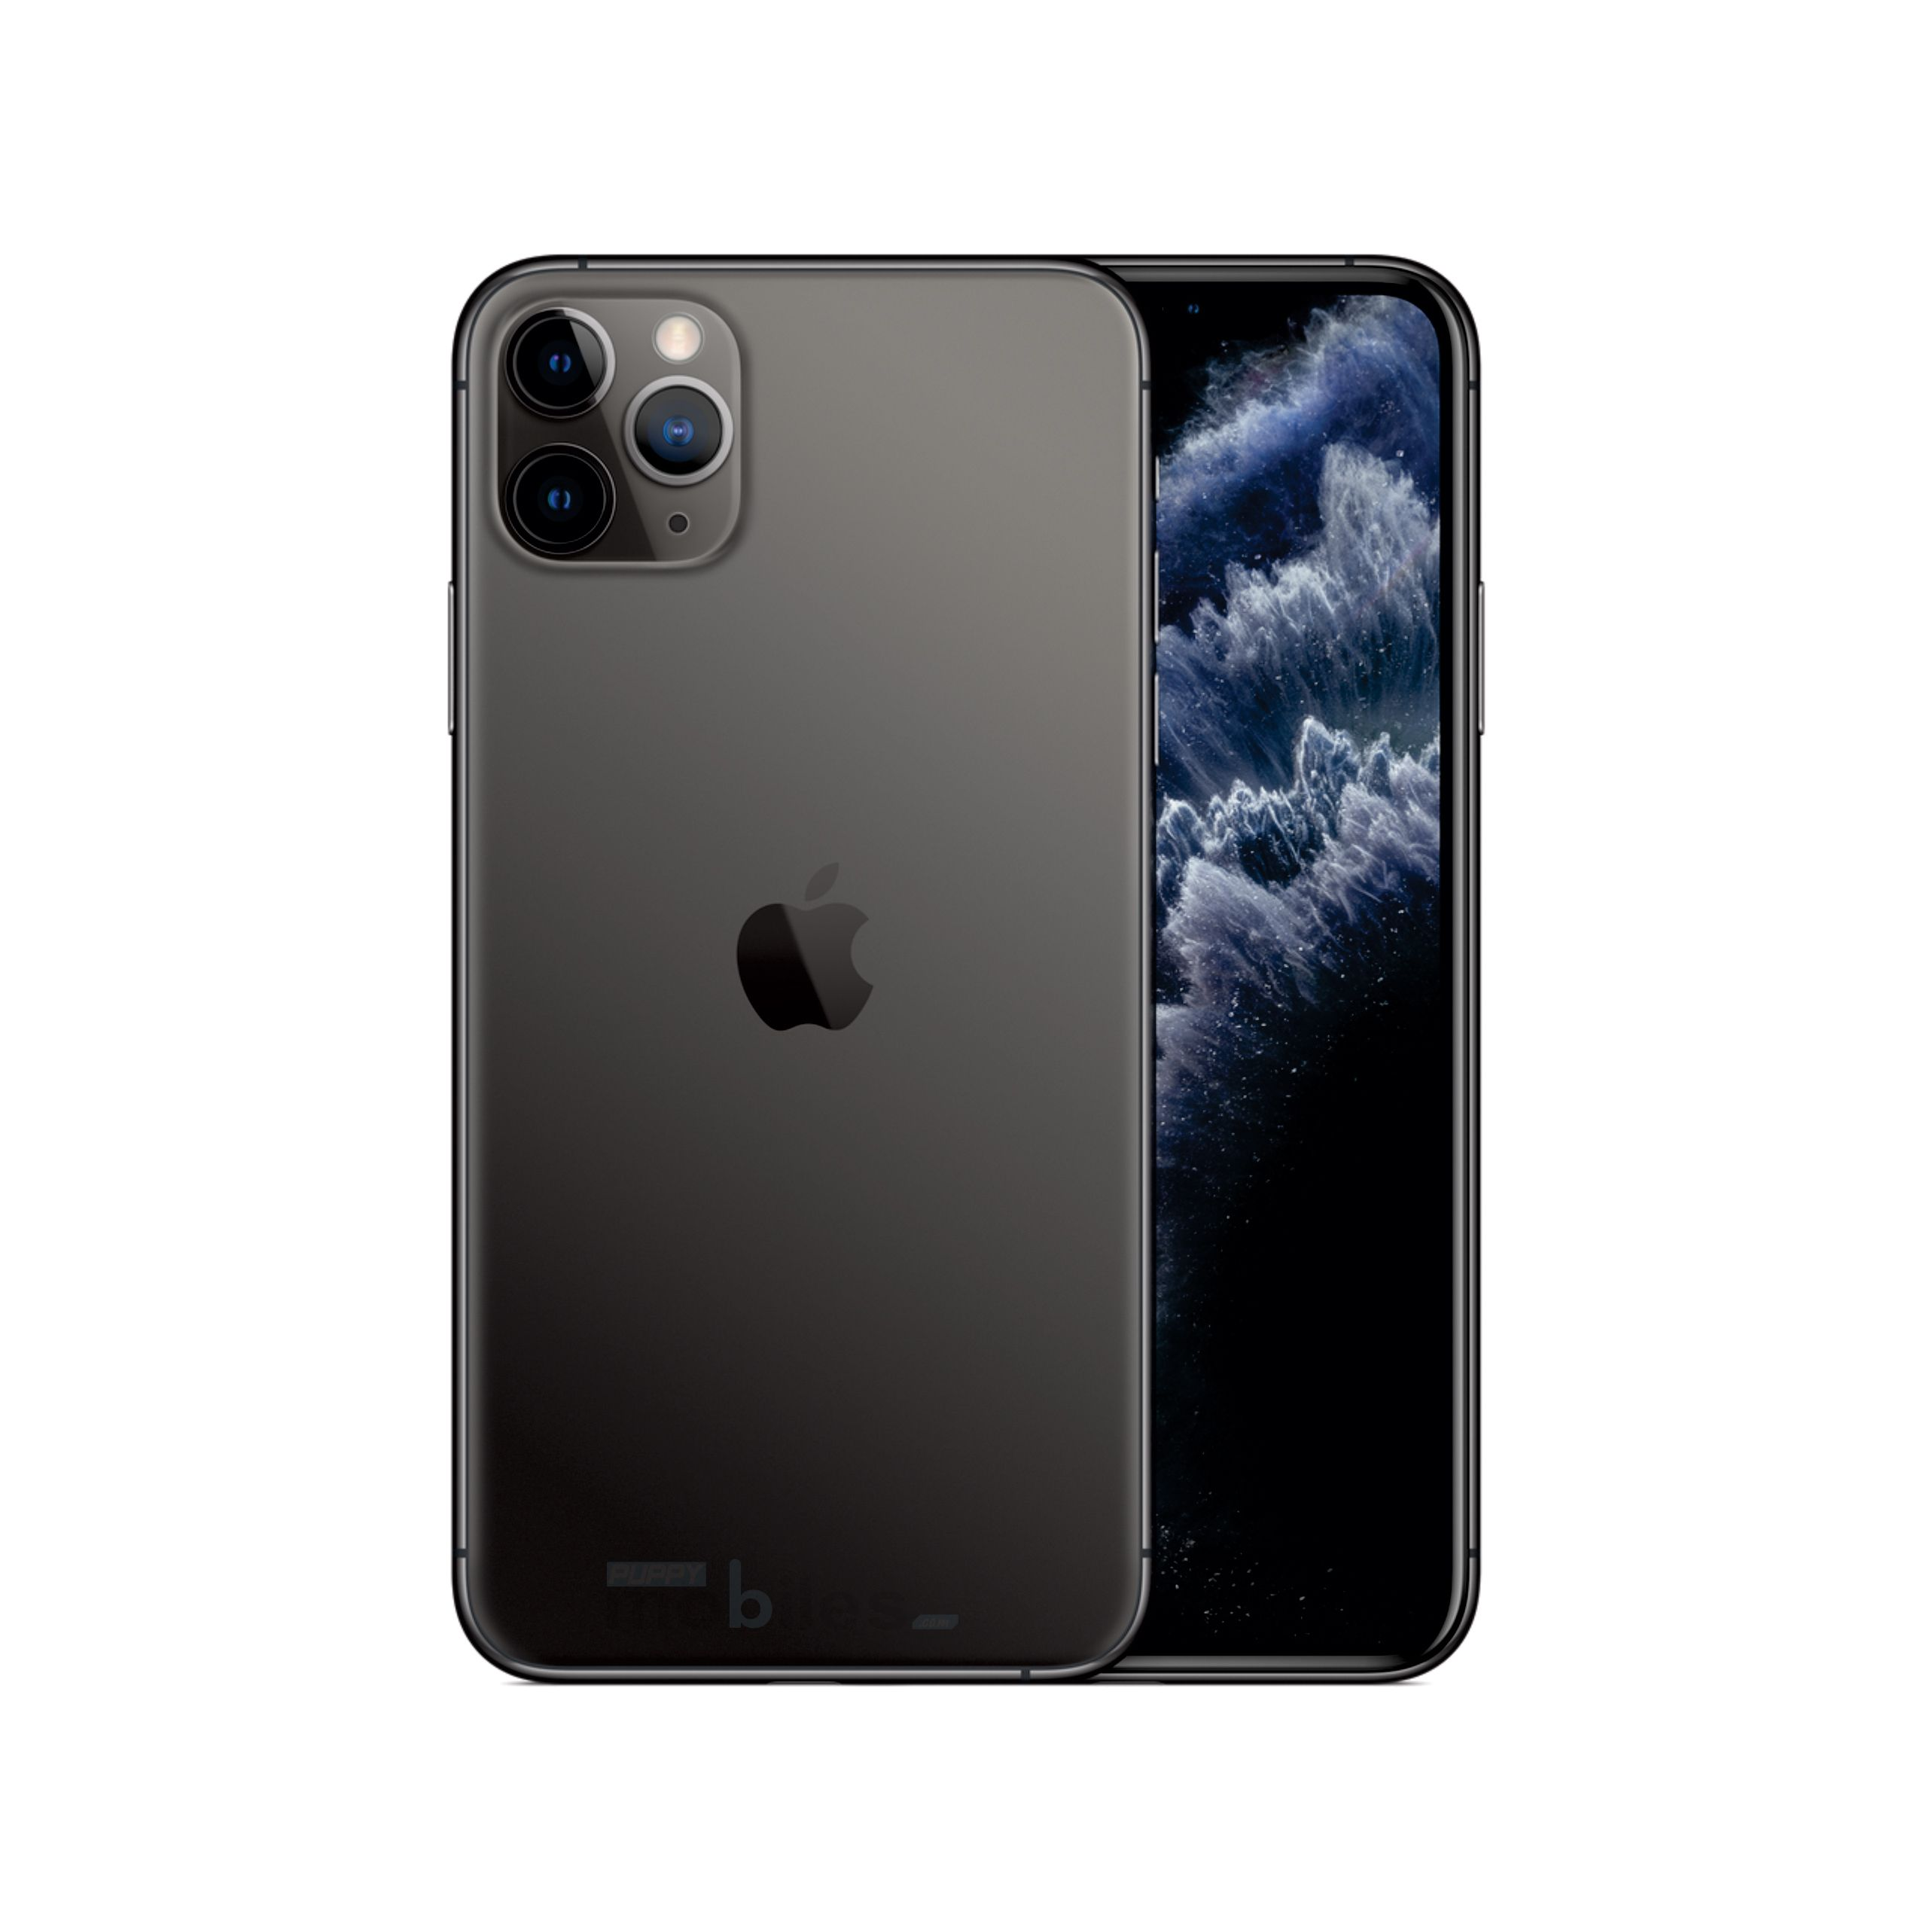 Apple iphone 11 pro max price full specs review